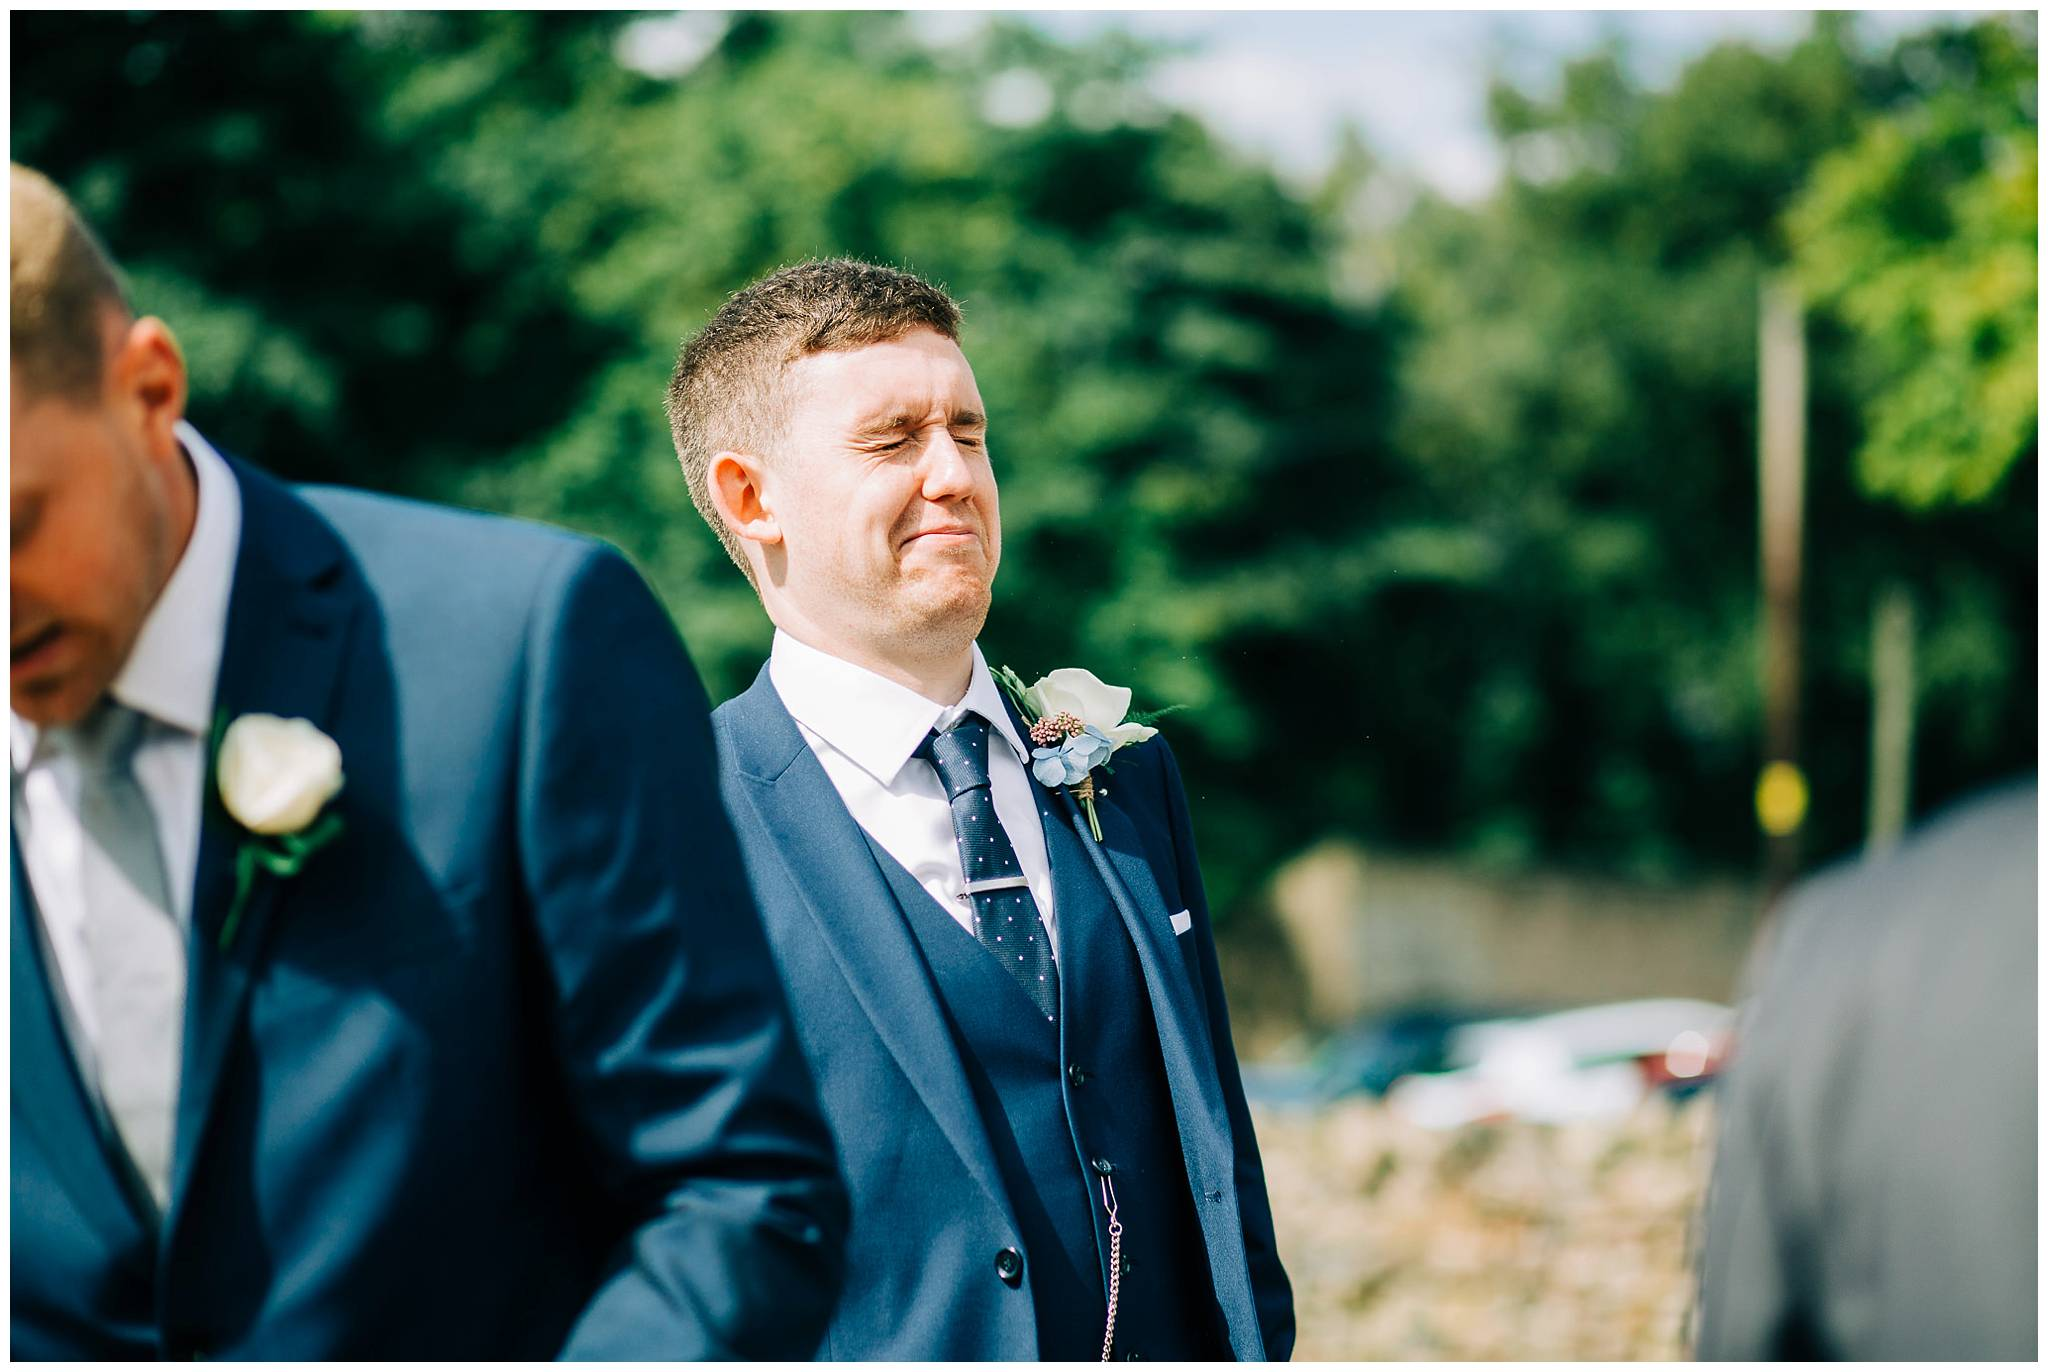 groom pulling funny face with closed eyes laughing at wedding guest